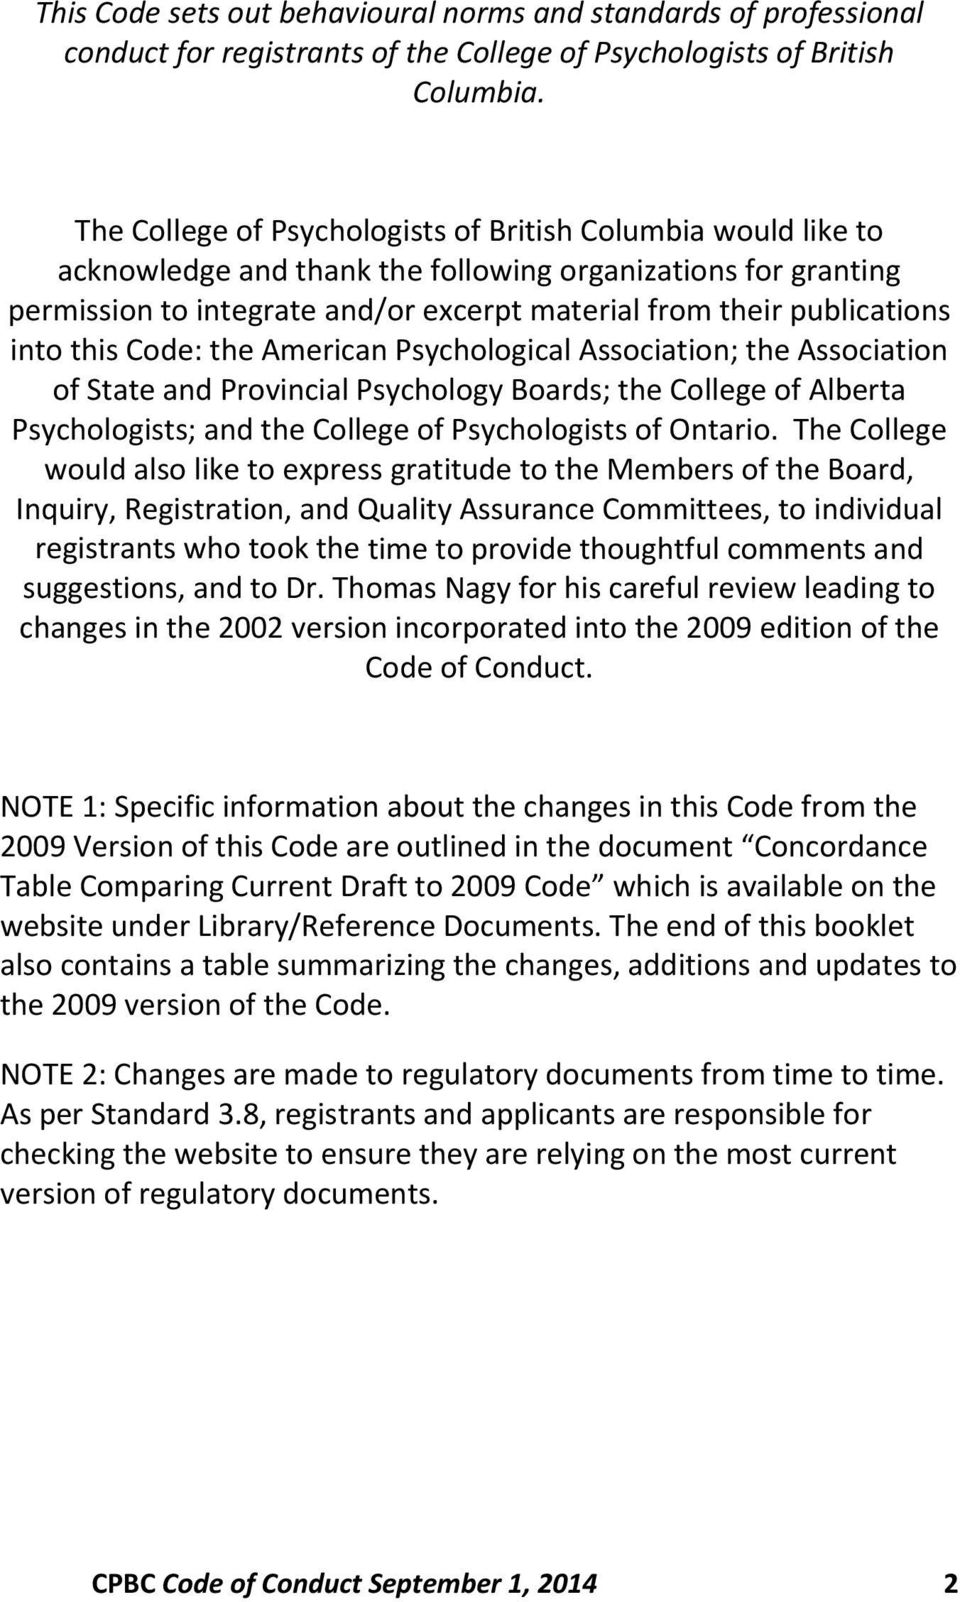 into this Code: the American Psychological Association; the Association of State and Provincial Psychology Boards; the College of Alberta Psychologists; and the College of Psychologists of Ontario.